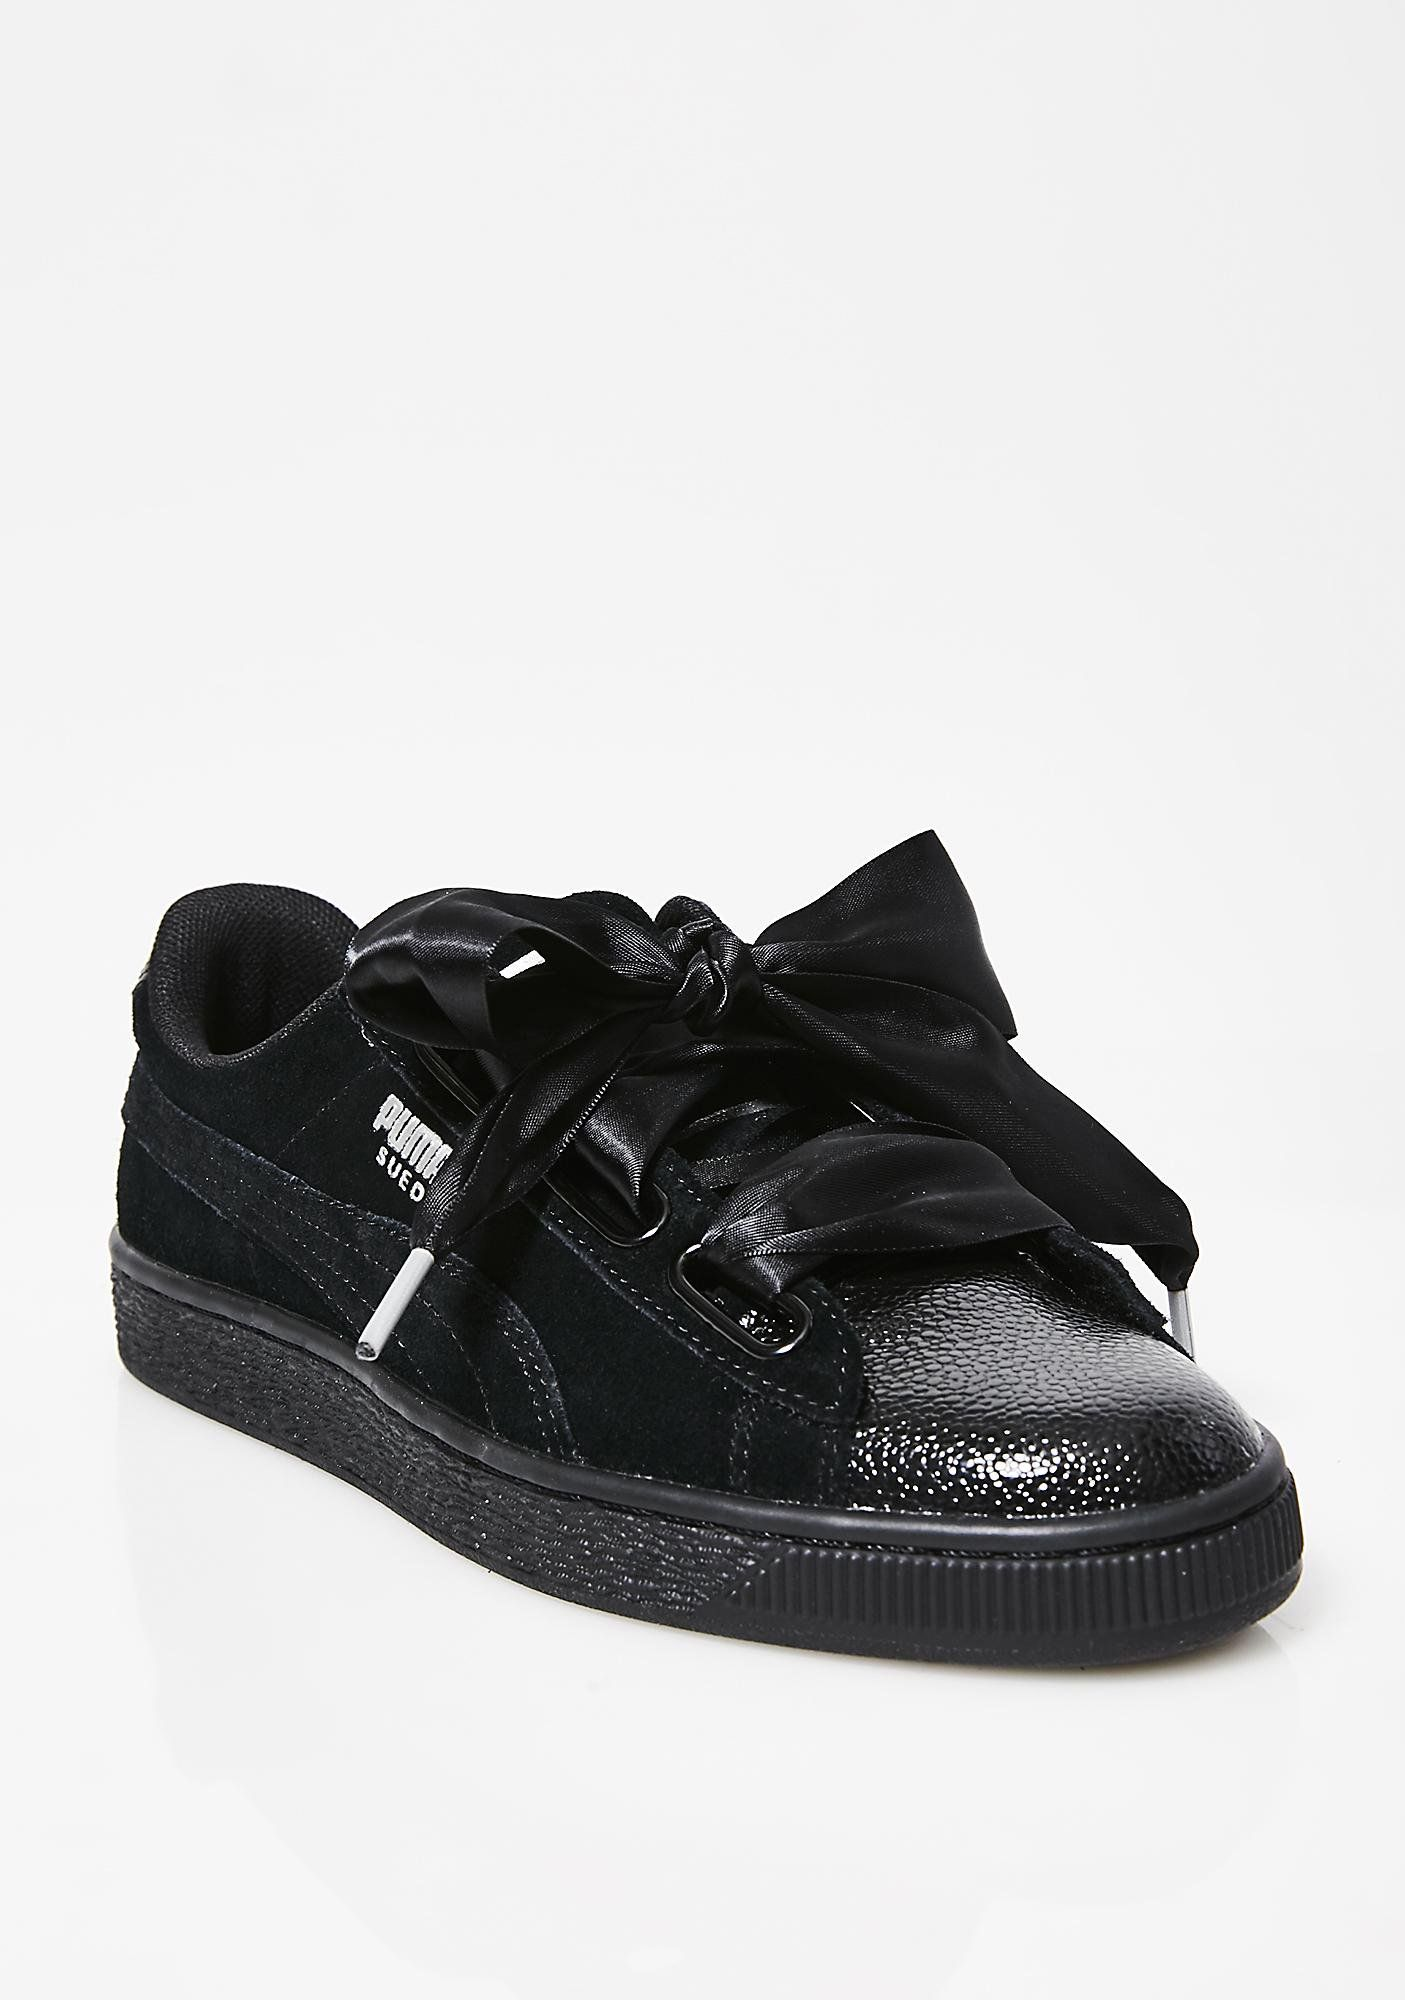 finest selection 3d0fb b9118 PUMA Suede Heart Bubble Sneakers | Shoes | Sneakers, Puma ...